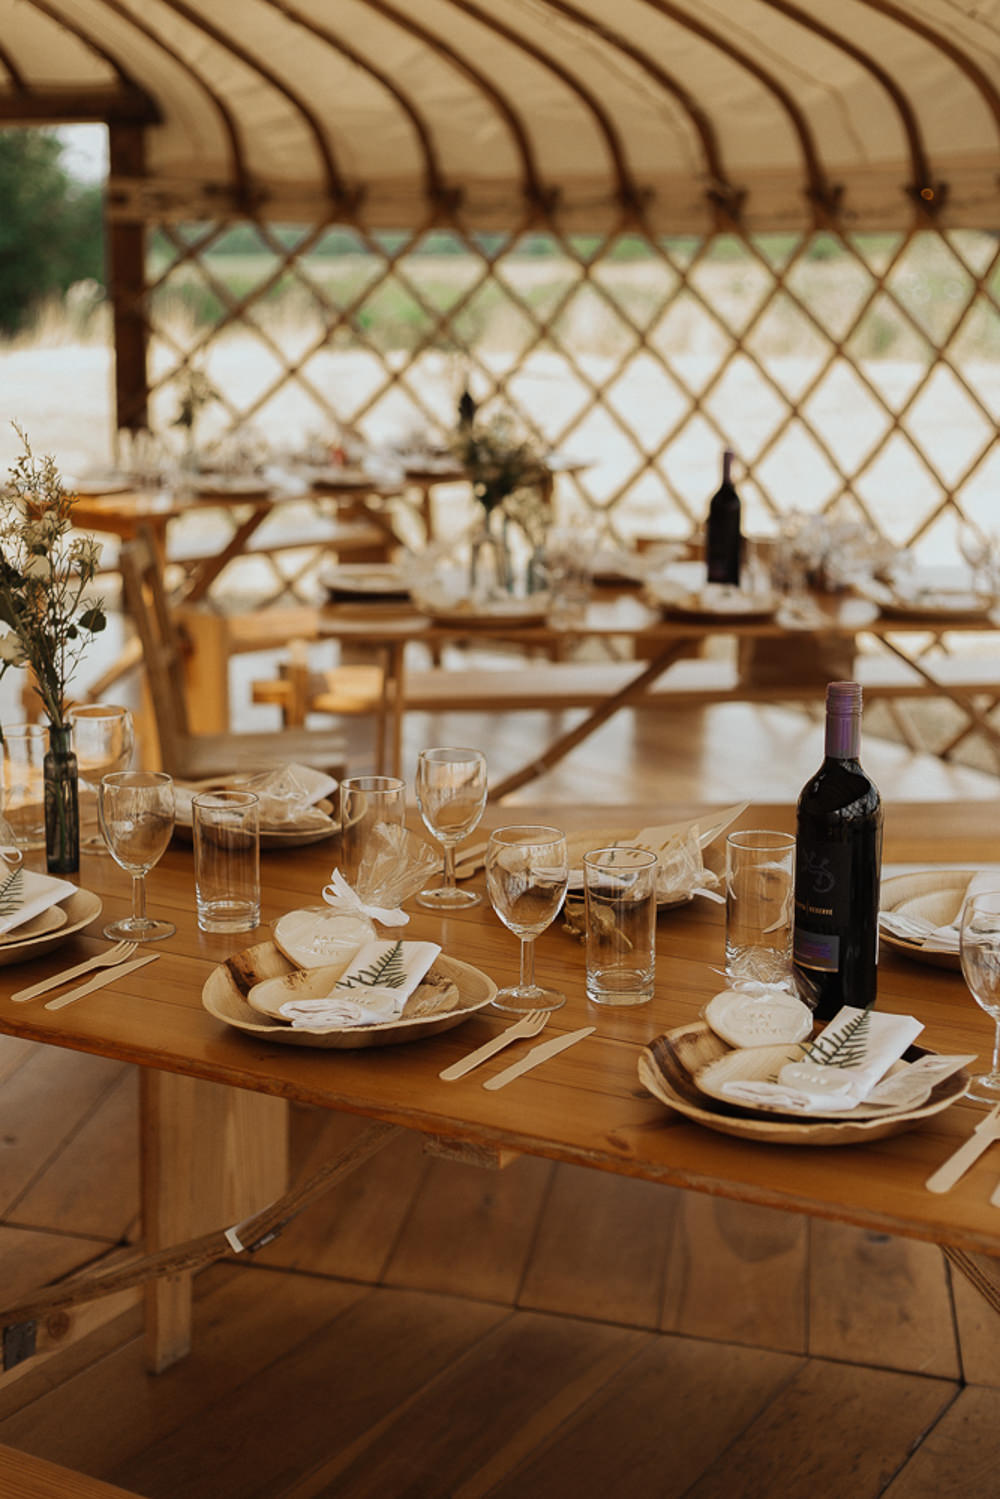 Rustic Tables Decor Riverside Weddings Oxfordshire Yurt Luis Calow Photographer